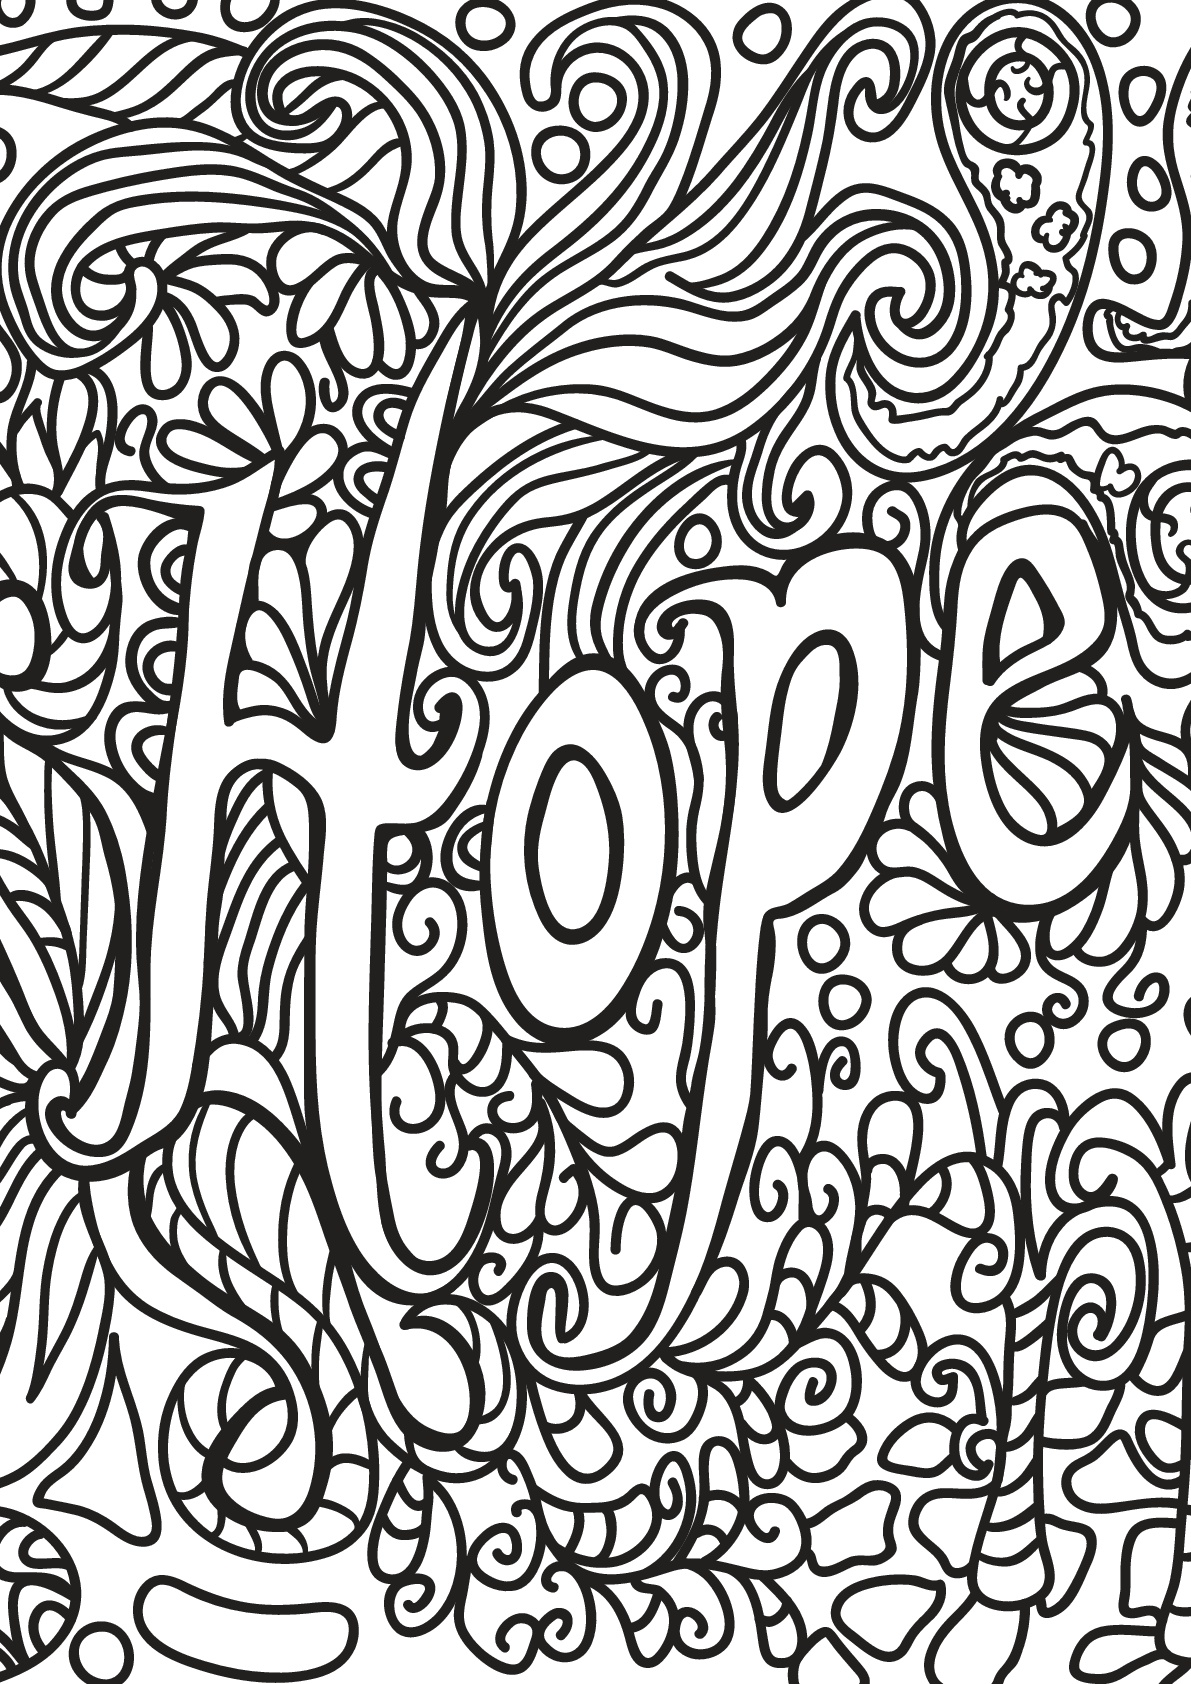 Free Book Quote 5 Positive Inspiring Quotes Adult Coloring Pages